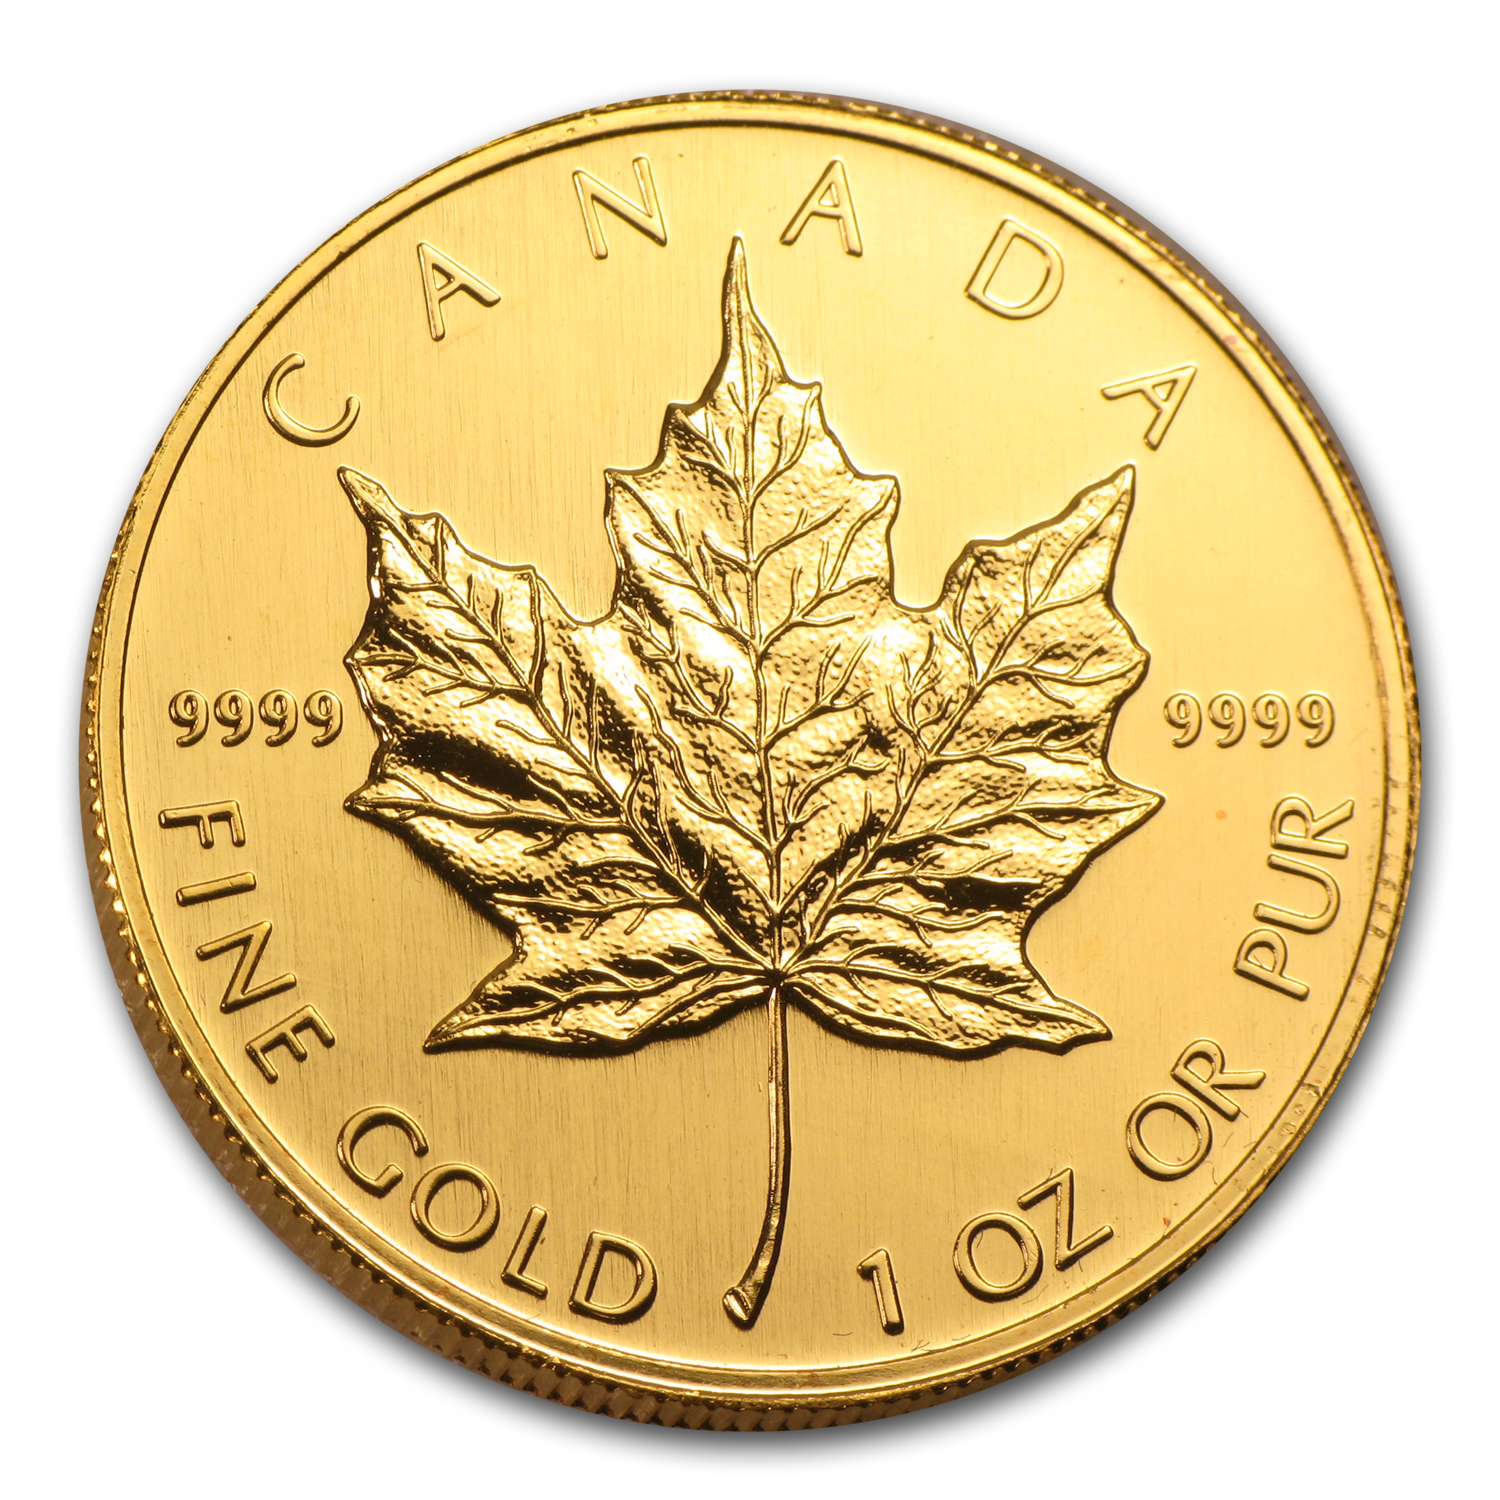 2001 Canada 1 oz Gold Maple Leaf BU